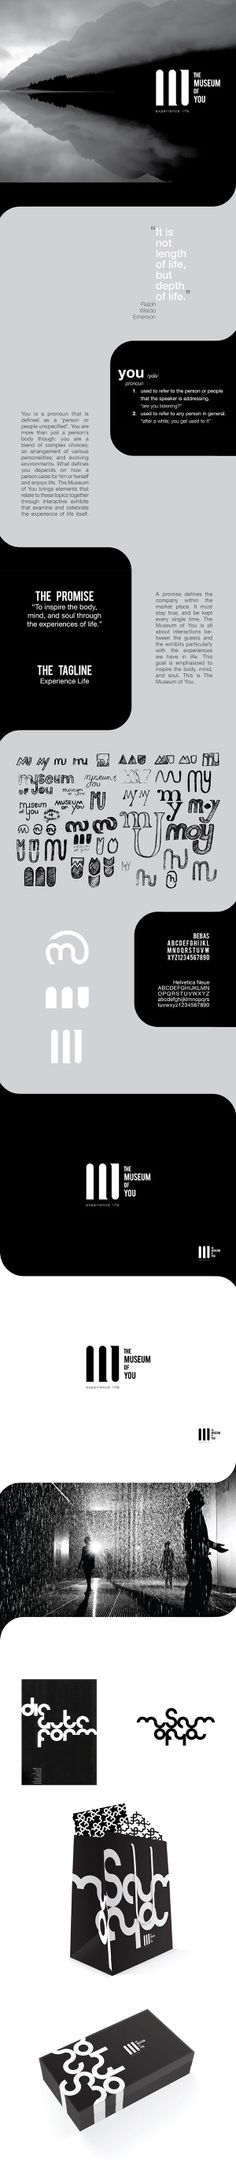 The Museum of You by Alex Kinal Wagner, via Behance